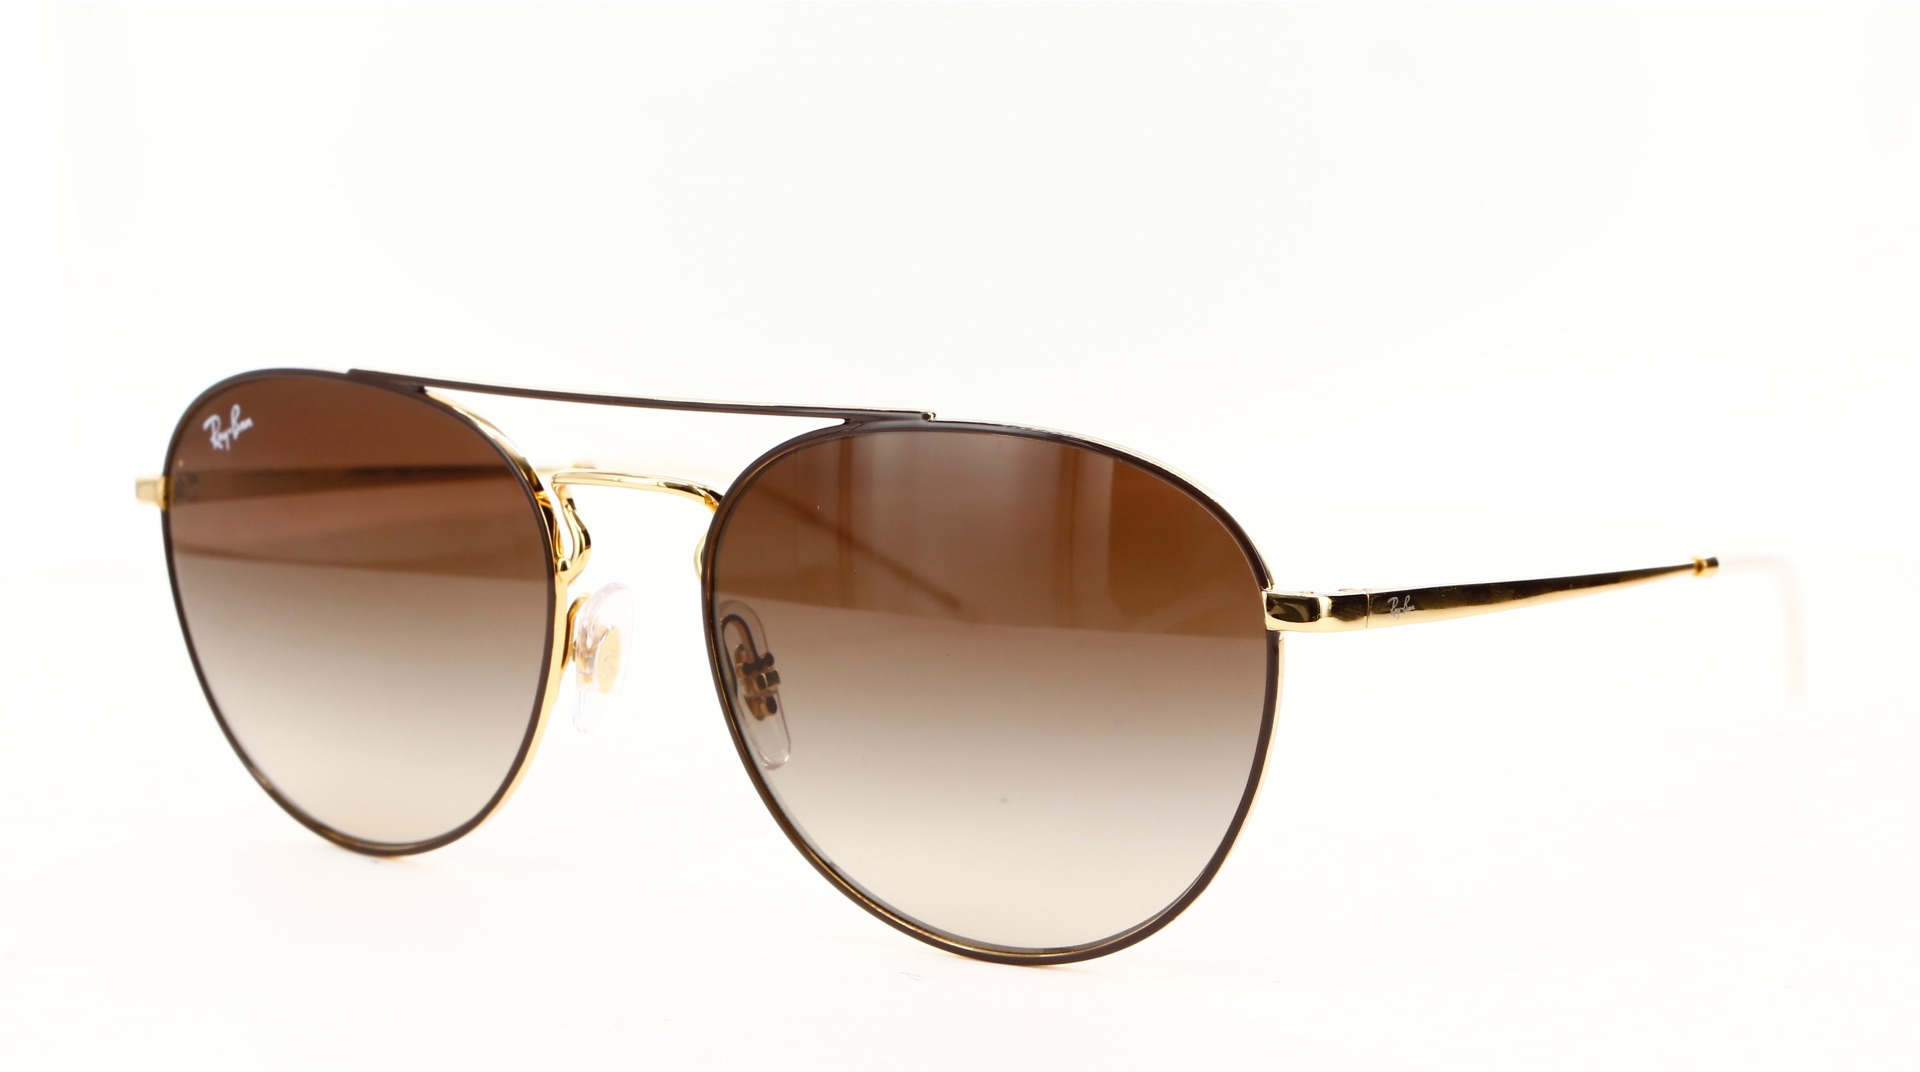 Ray-Ban - ref: 79135